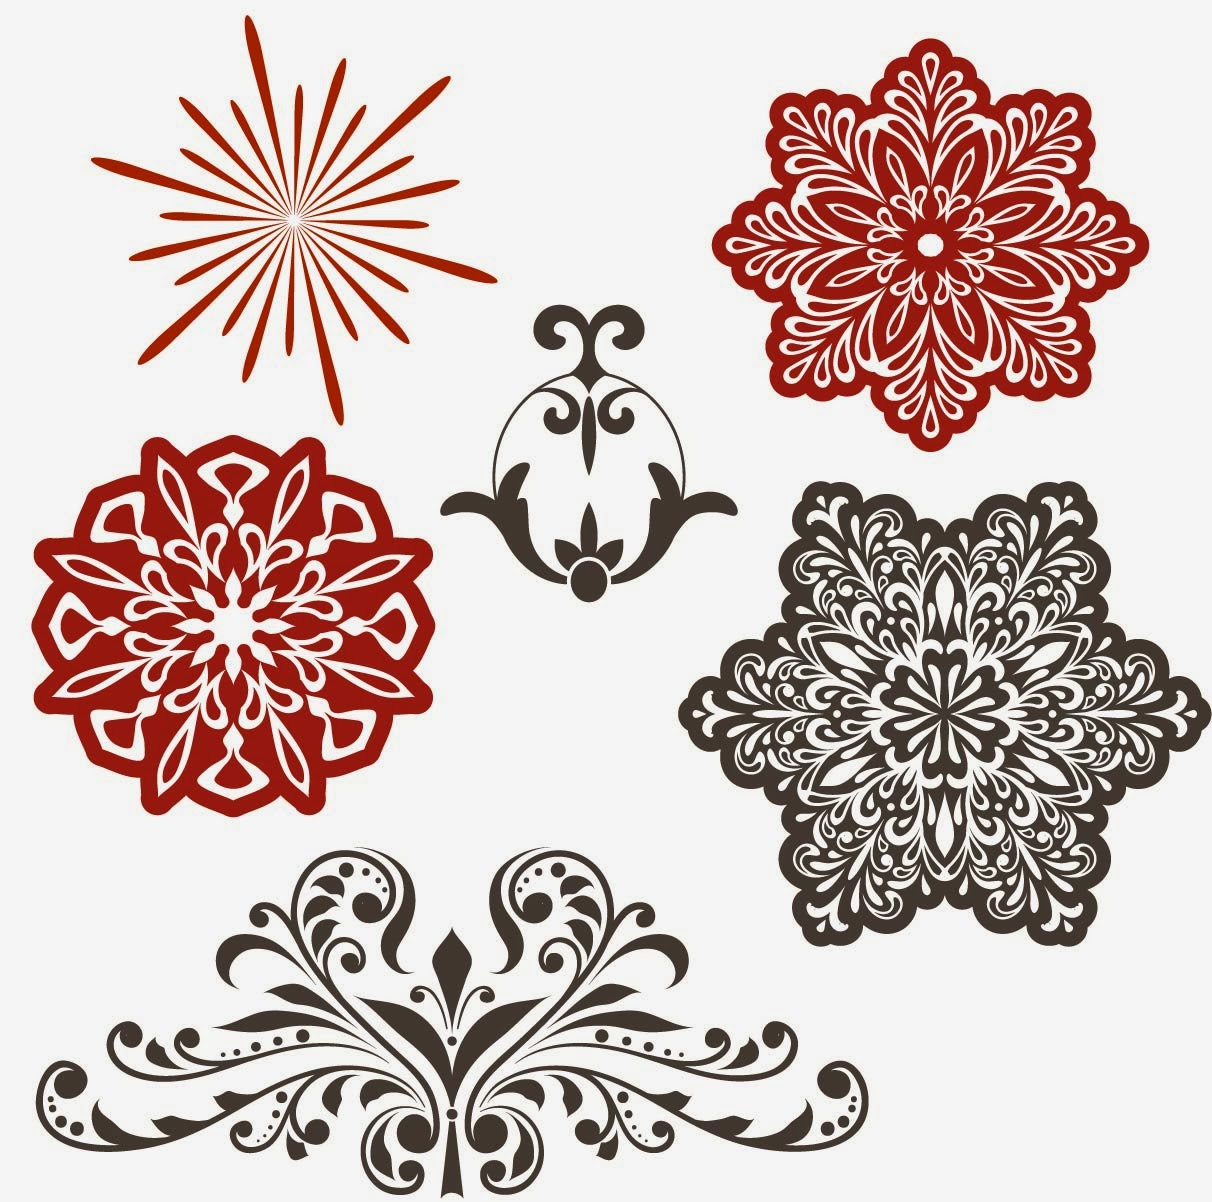 Element clipart decorative Decorative free elements Cliparts Free